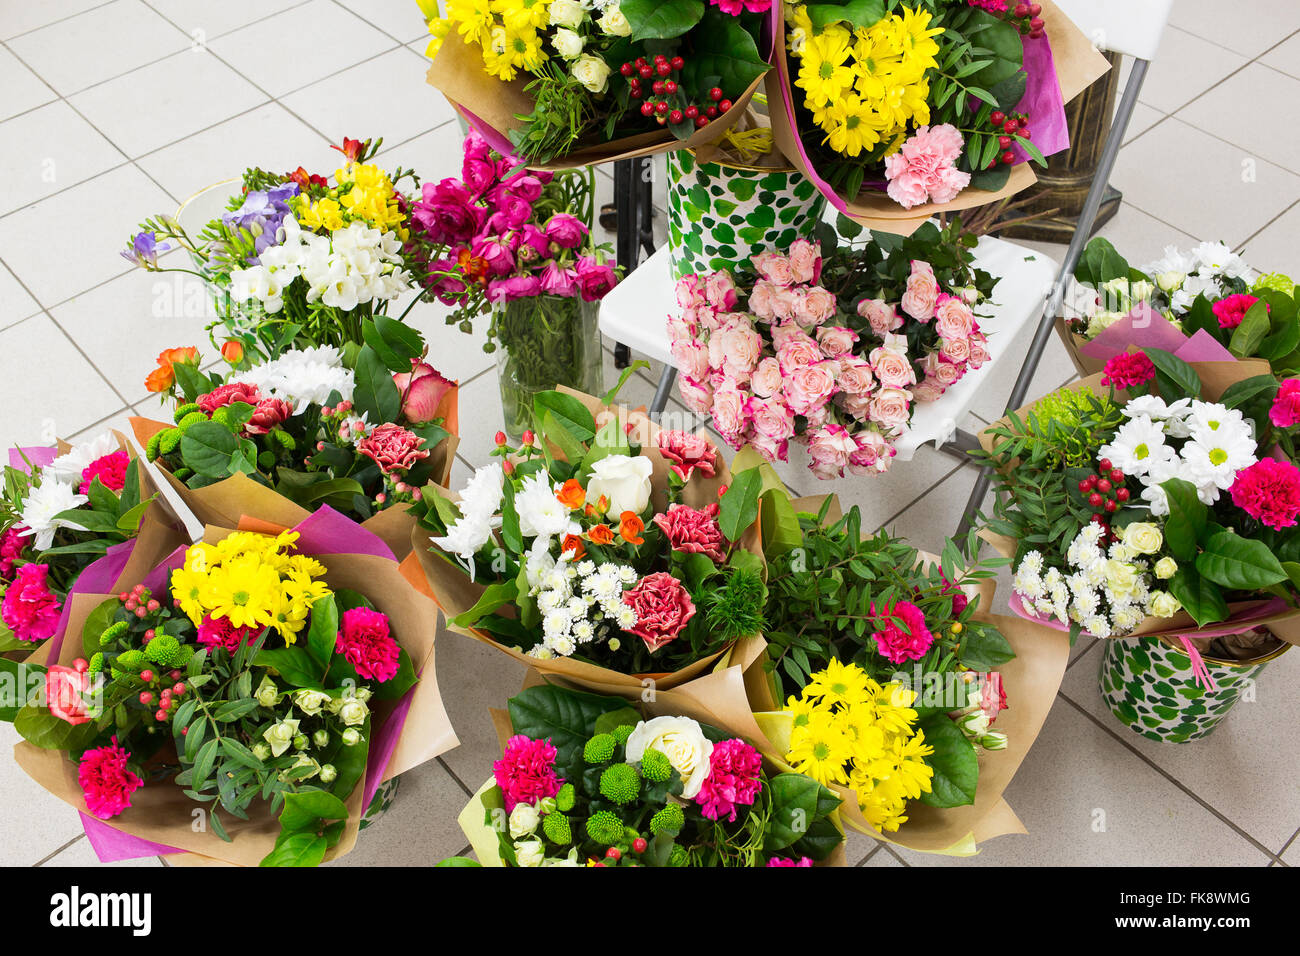 Different flowers bouquets background Stock Photo: 97926096 - Alamy